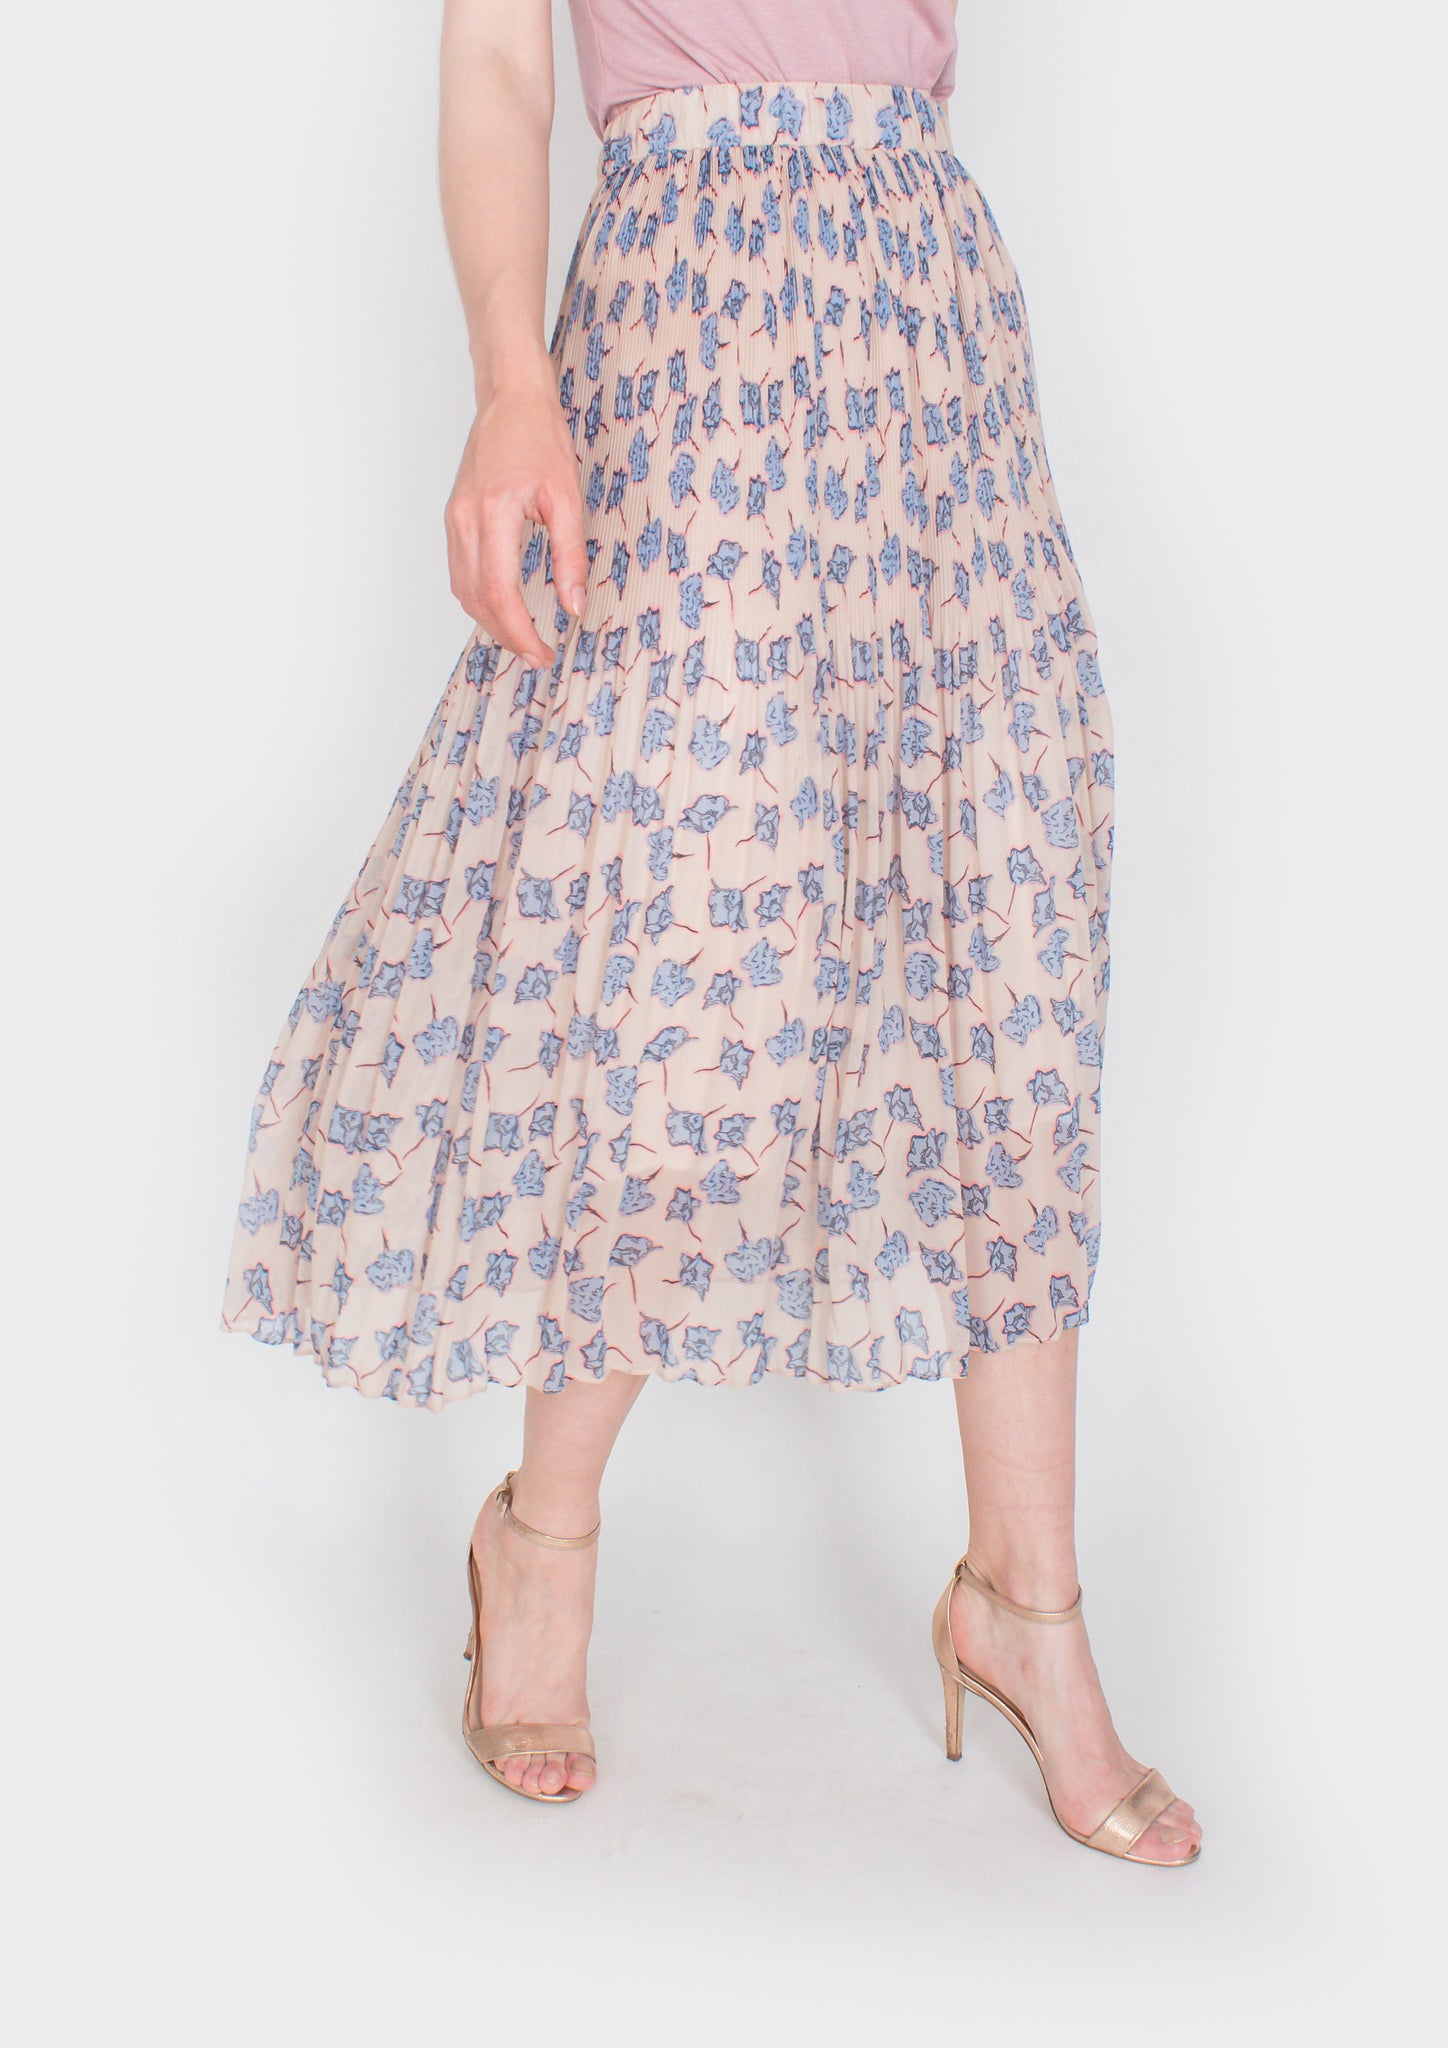 Vintage Floral Print Pleated Skirt (Cream)